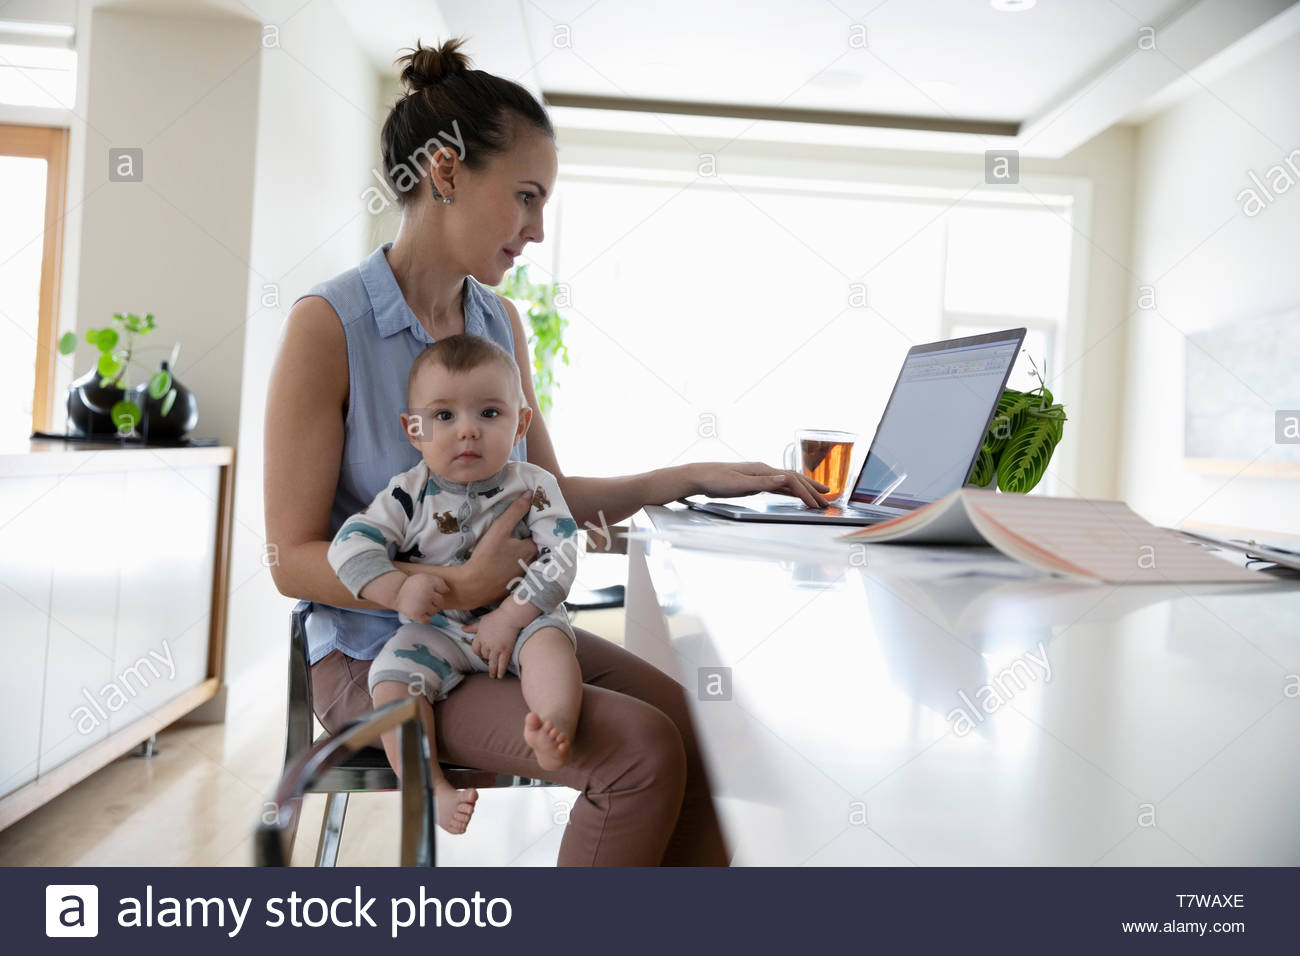 Mother with baby working at home - Stock Image